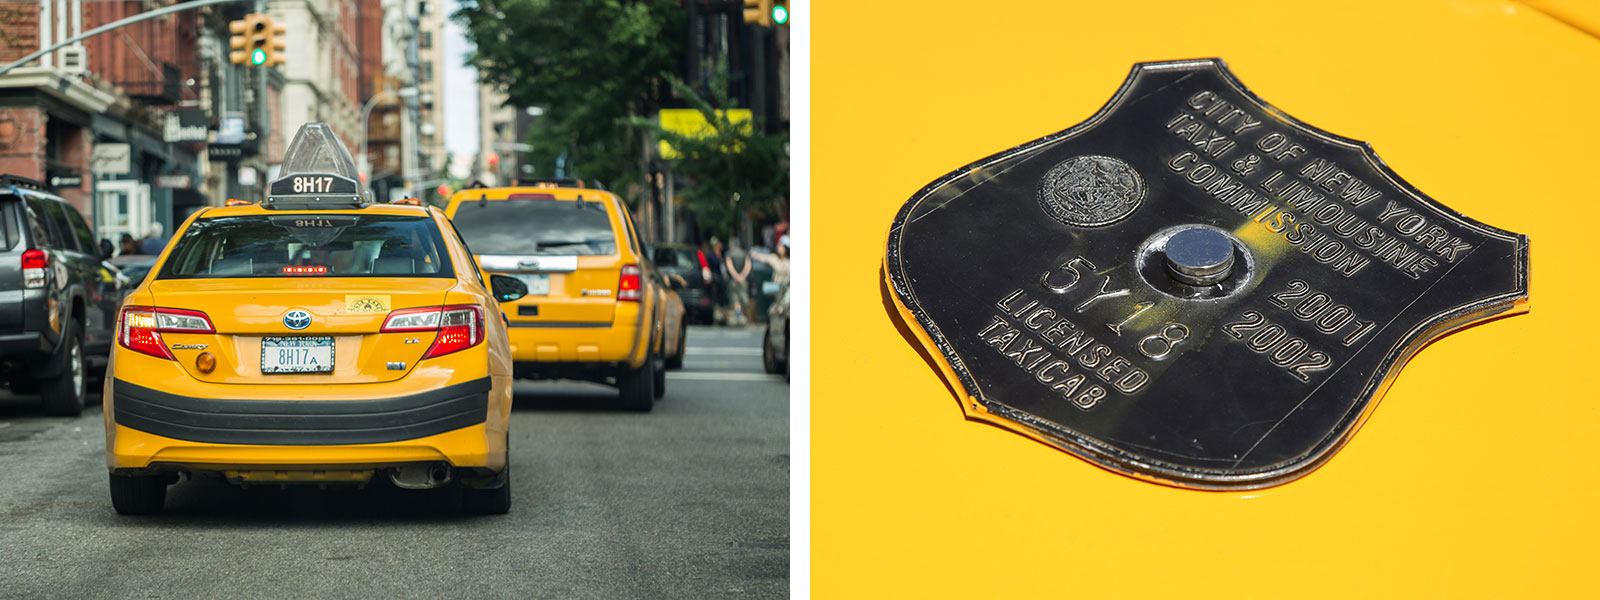 Left: Taxi cabs driving through the streets of New York City. Right: A New York City taxi medallion is pictured.